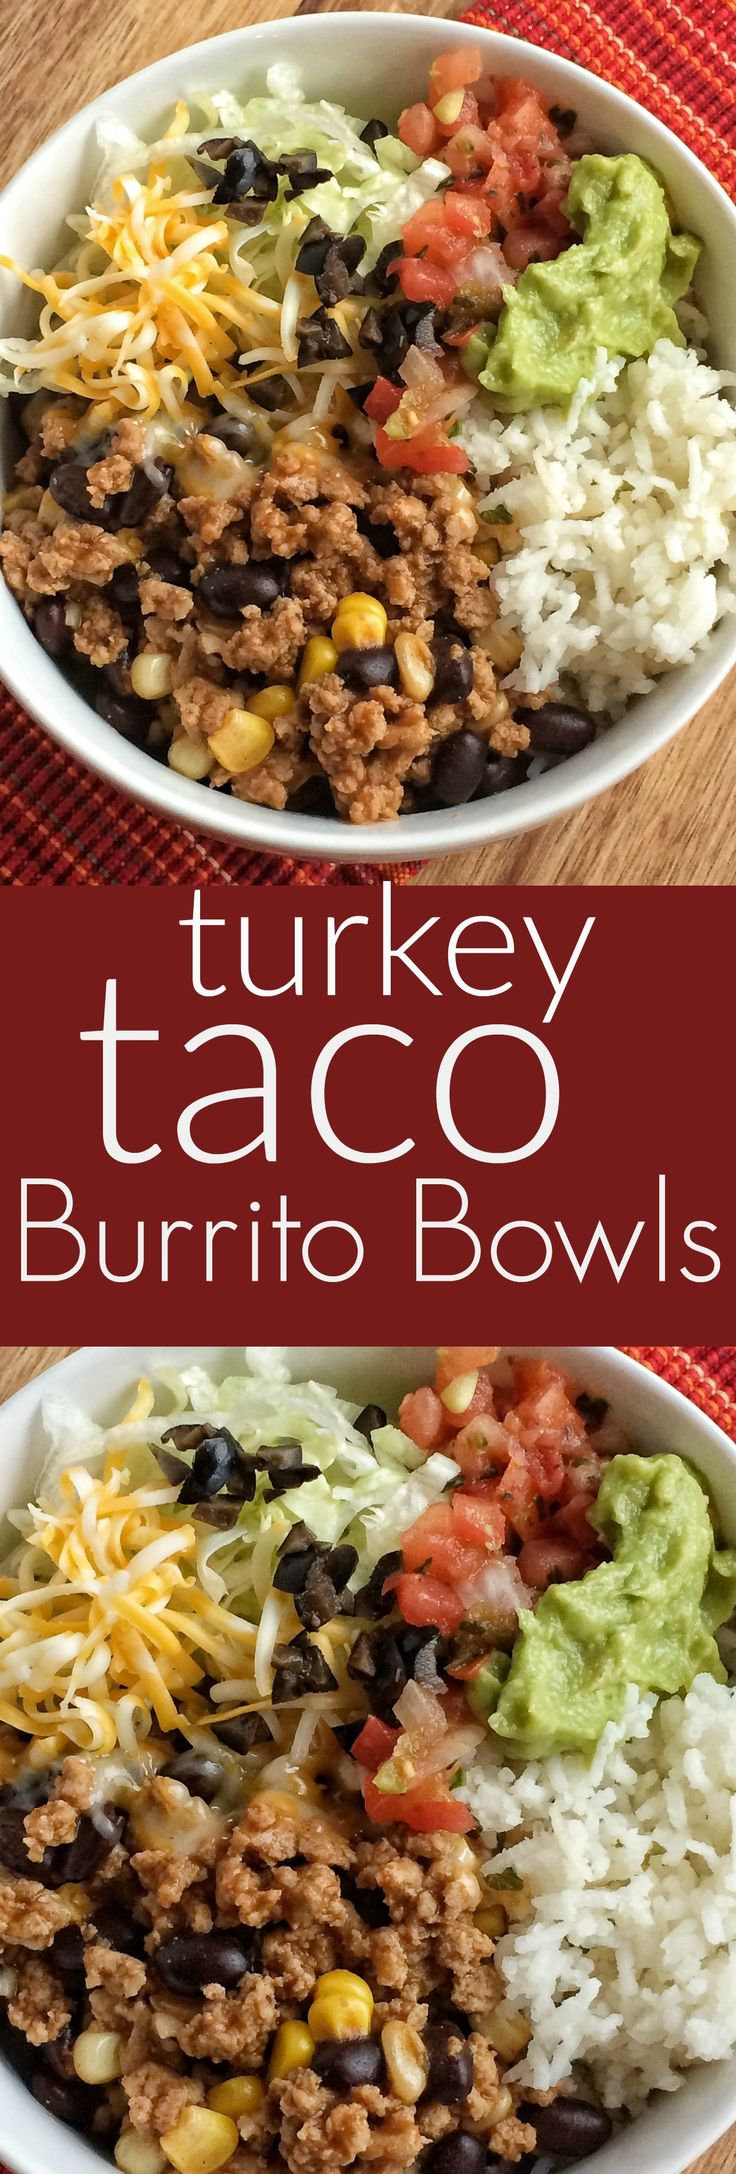 Turkey Taco Burrito Bowls are a family favorite meal! Let everyone build their own bowl for a fun do it yourself dinner. Turkey taco meat simmers on the stove top to make these burrito bowls so flavorful. Add on all the fresh veggie toppings for a healthy dinner.